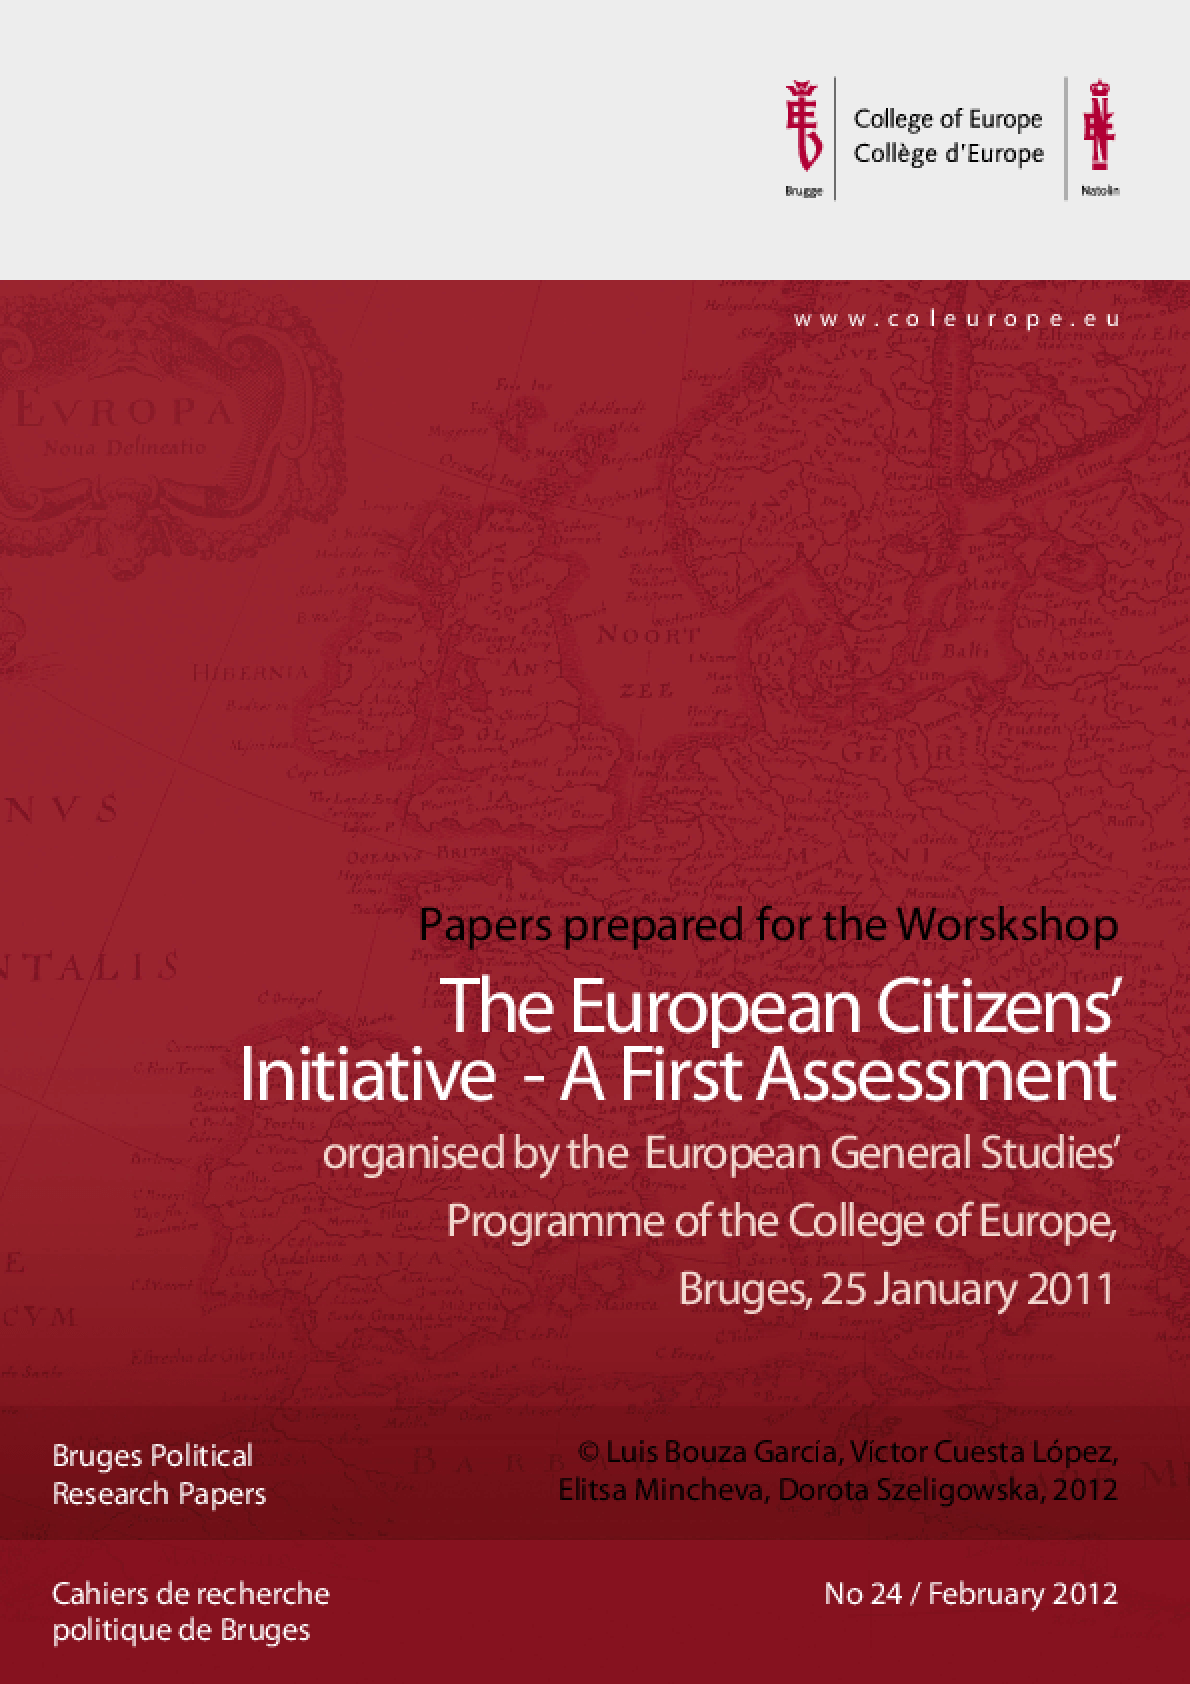 The European Citizens' Initiative: A First Assessment